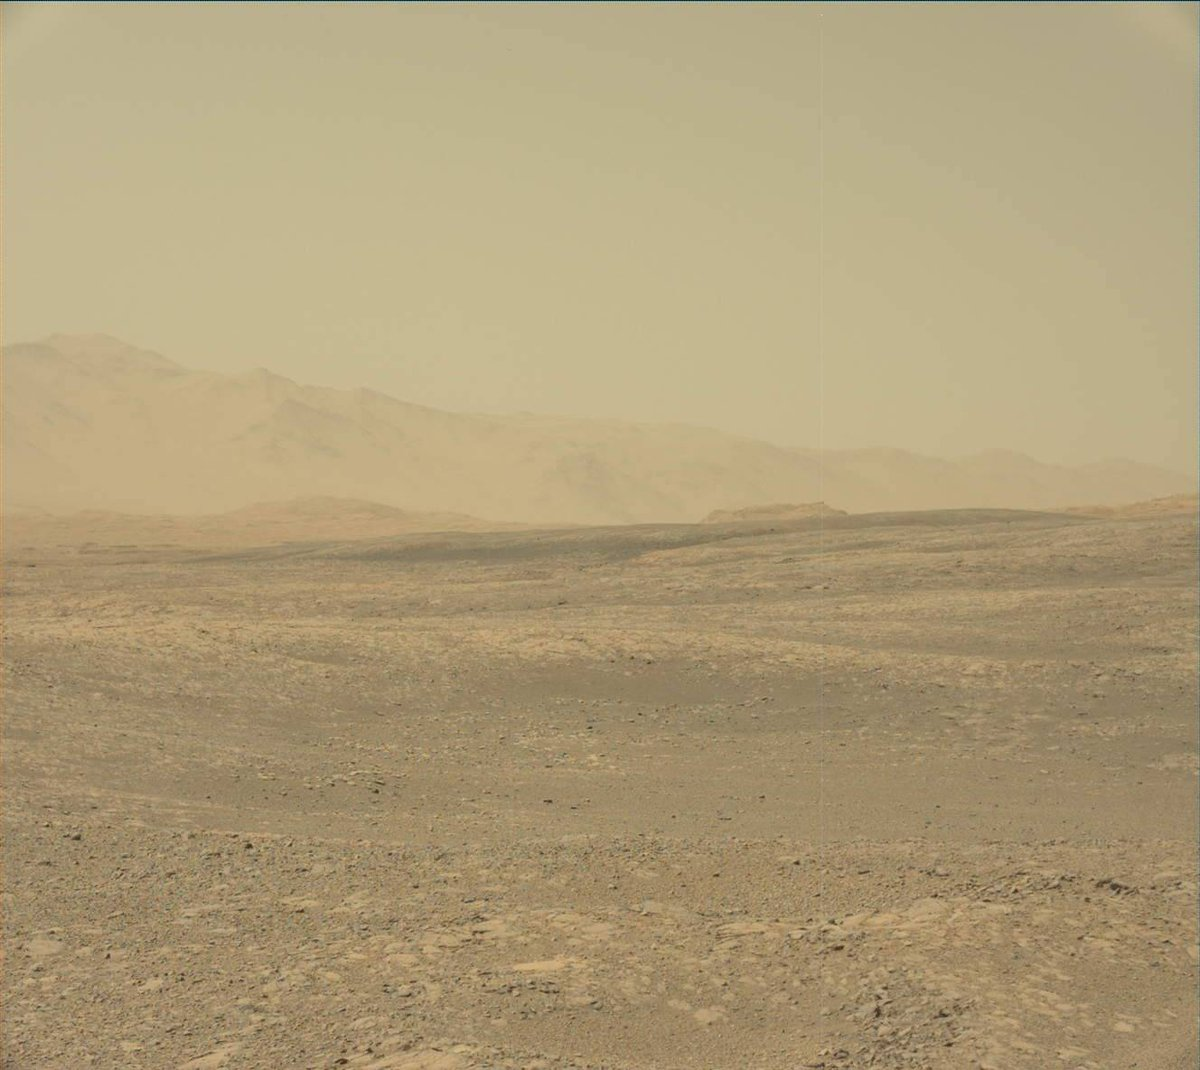 Skies on Mars are clearing up. Still nothing to look at, but at least I can see it.